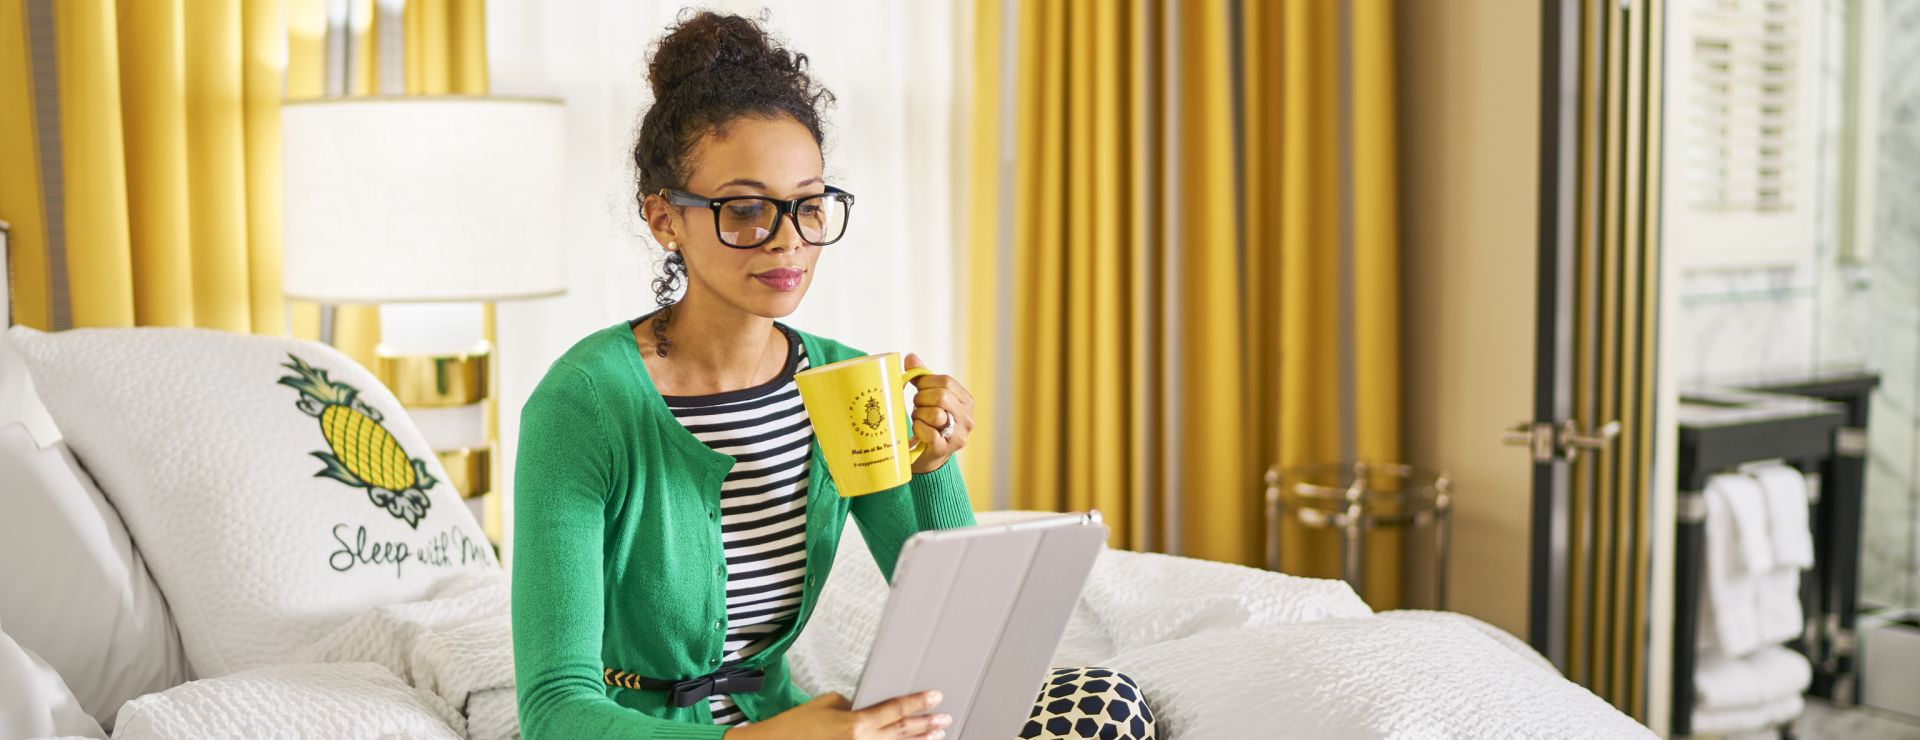 Women sitting on bed reading tablet and drinking from coffee mug